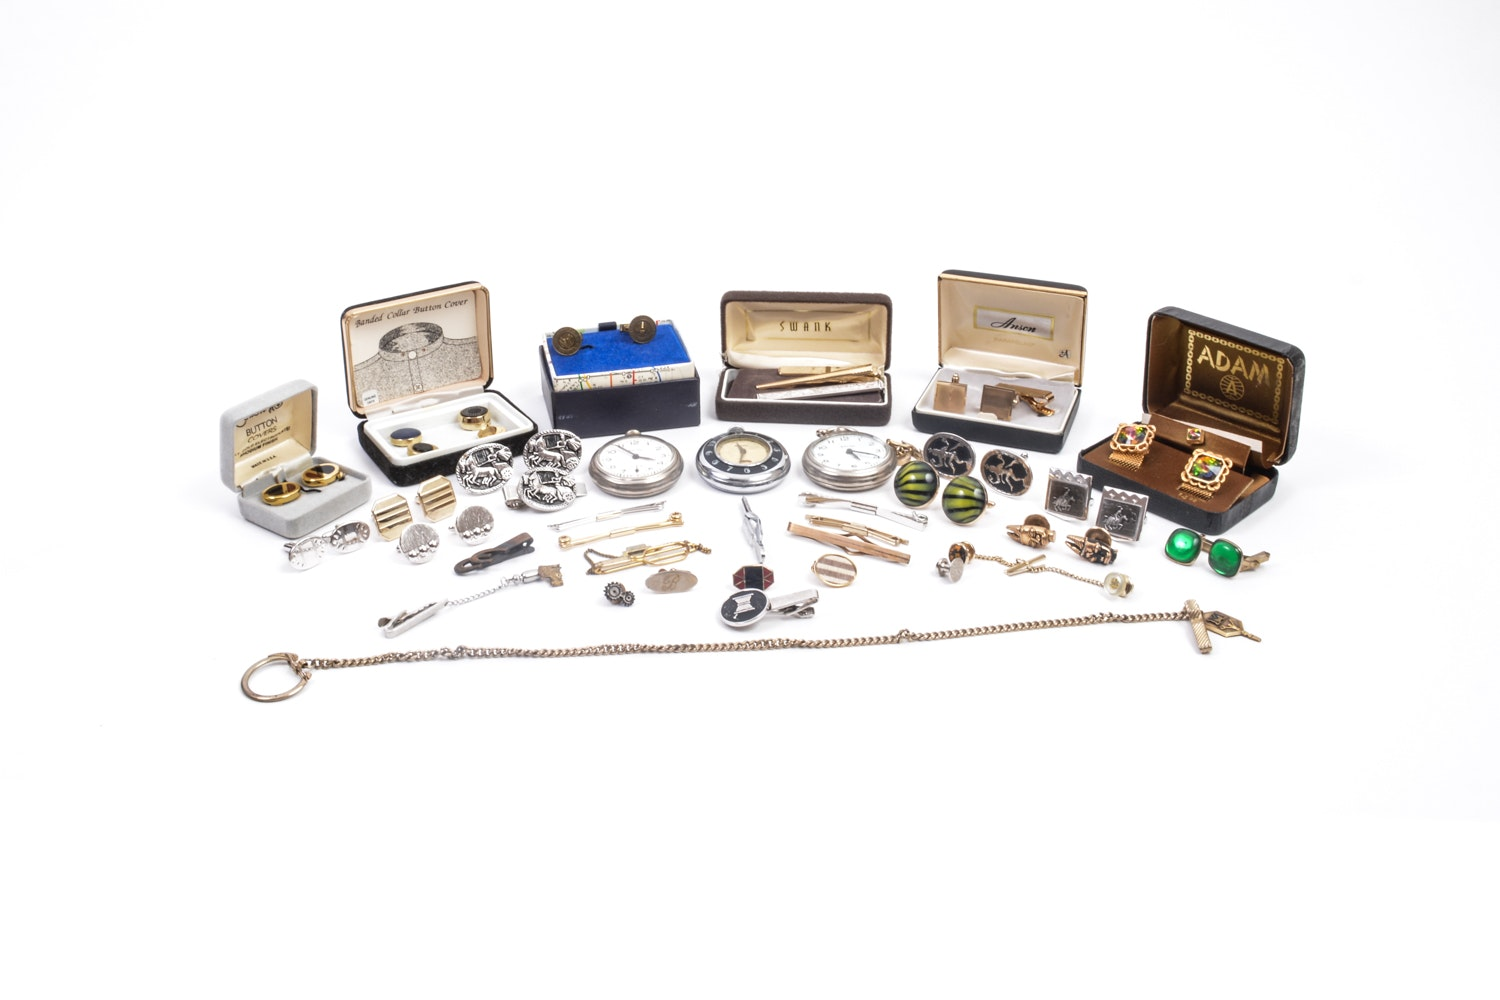 Collection of Men's Cufflinks, Tie Clips, and Pocket Watches